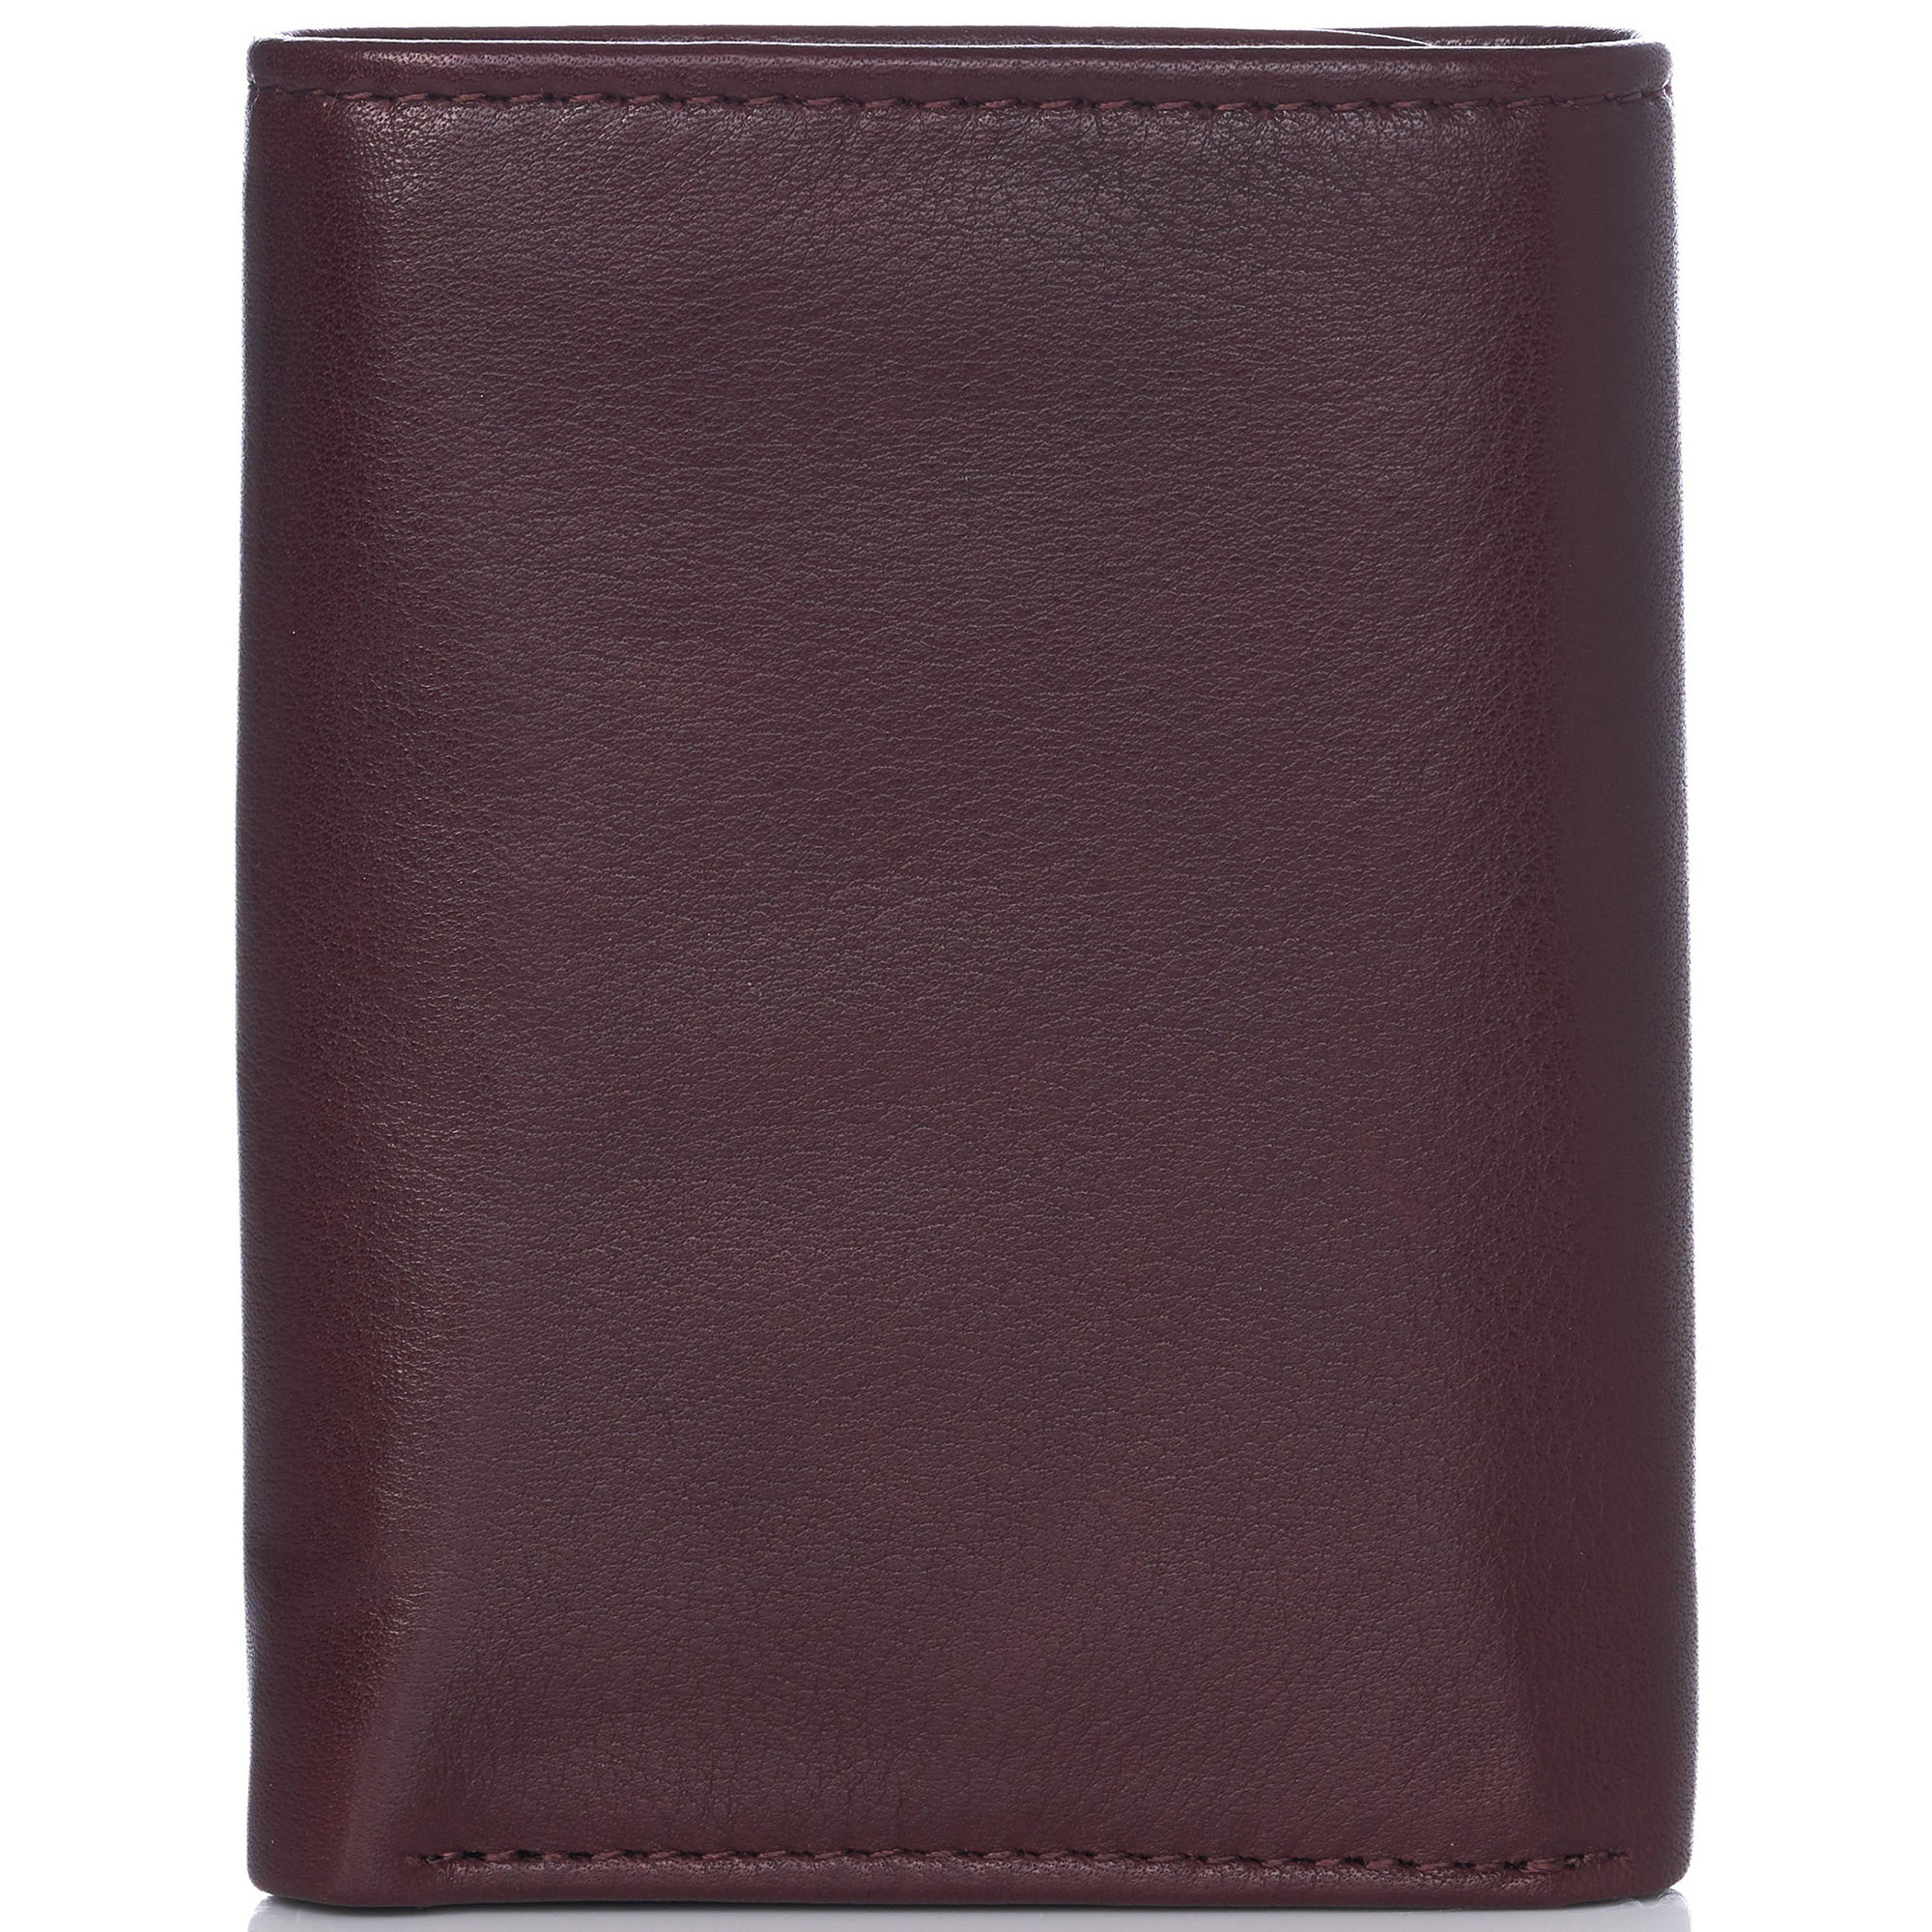 Alpine-Swiss-RFID-Mens-Wallet-Deluxe-Capacity-Trifold-With-Divided-Bill-Section thumbnail 101